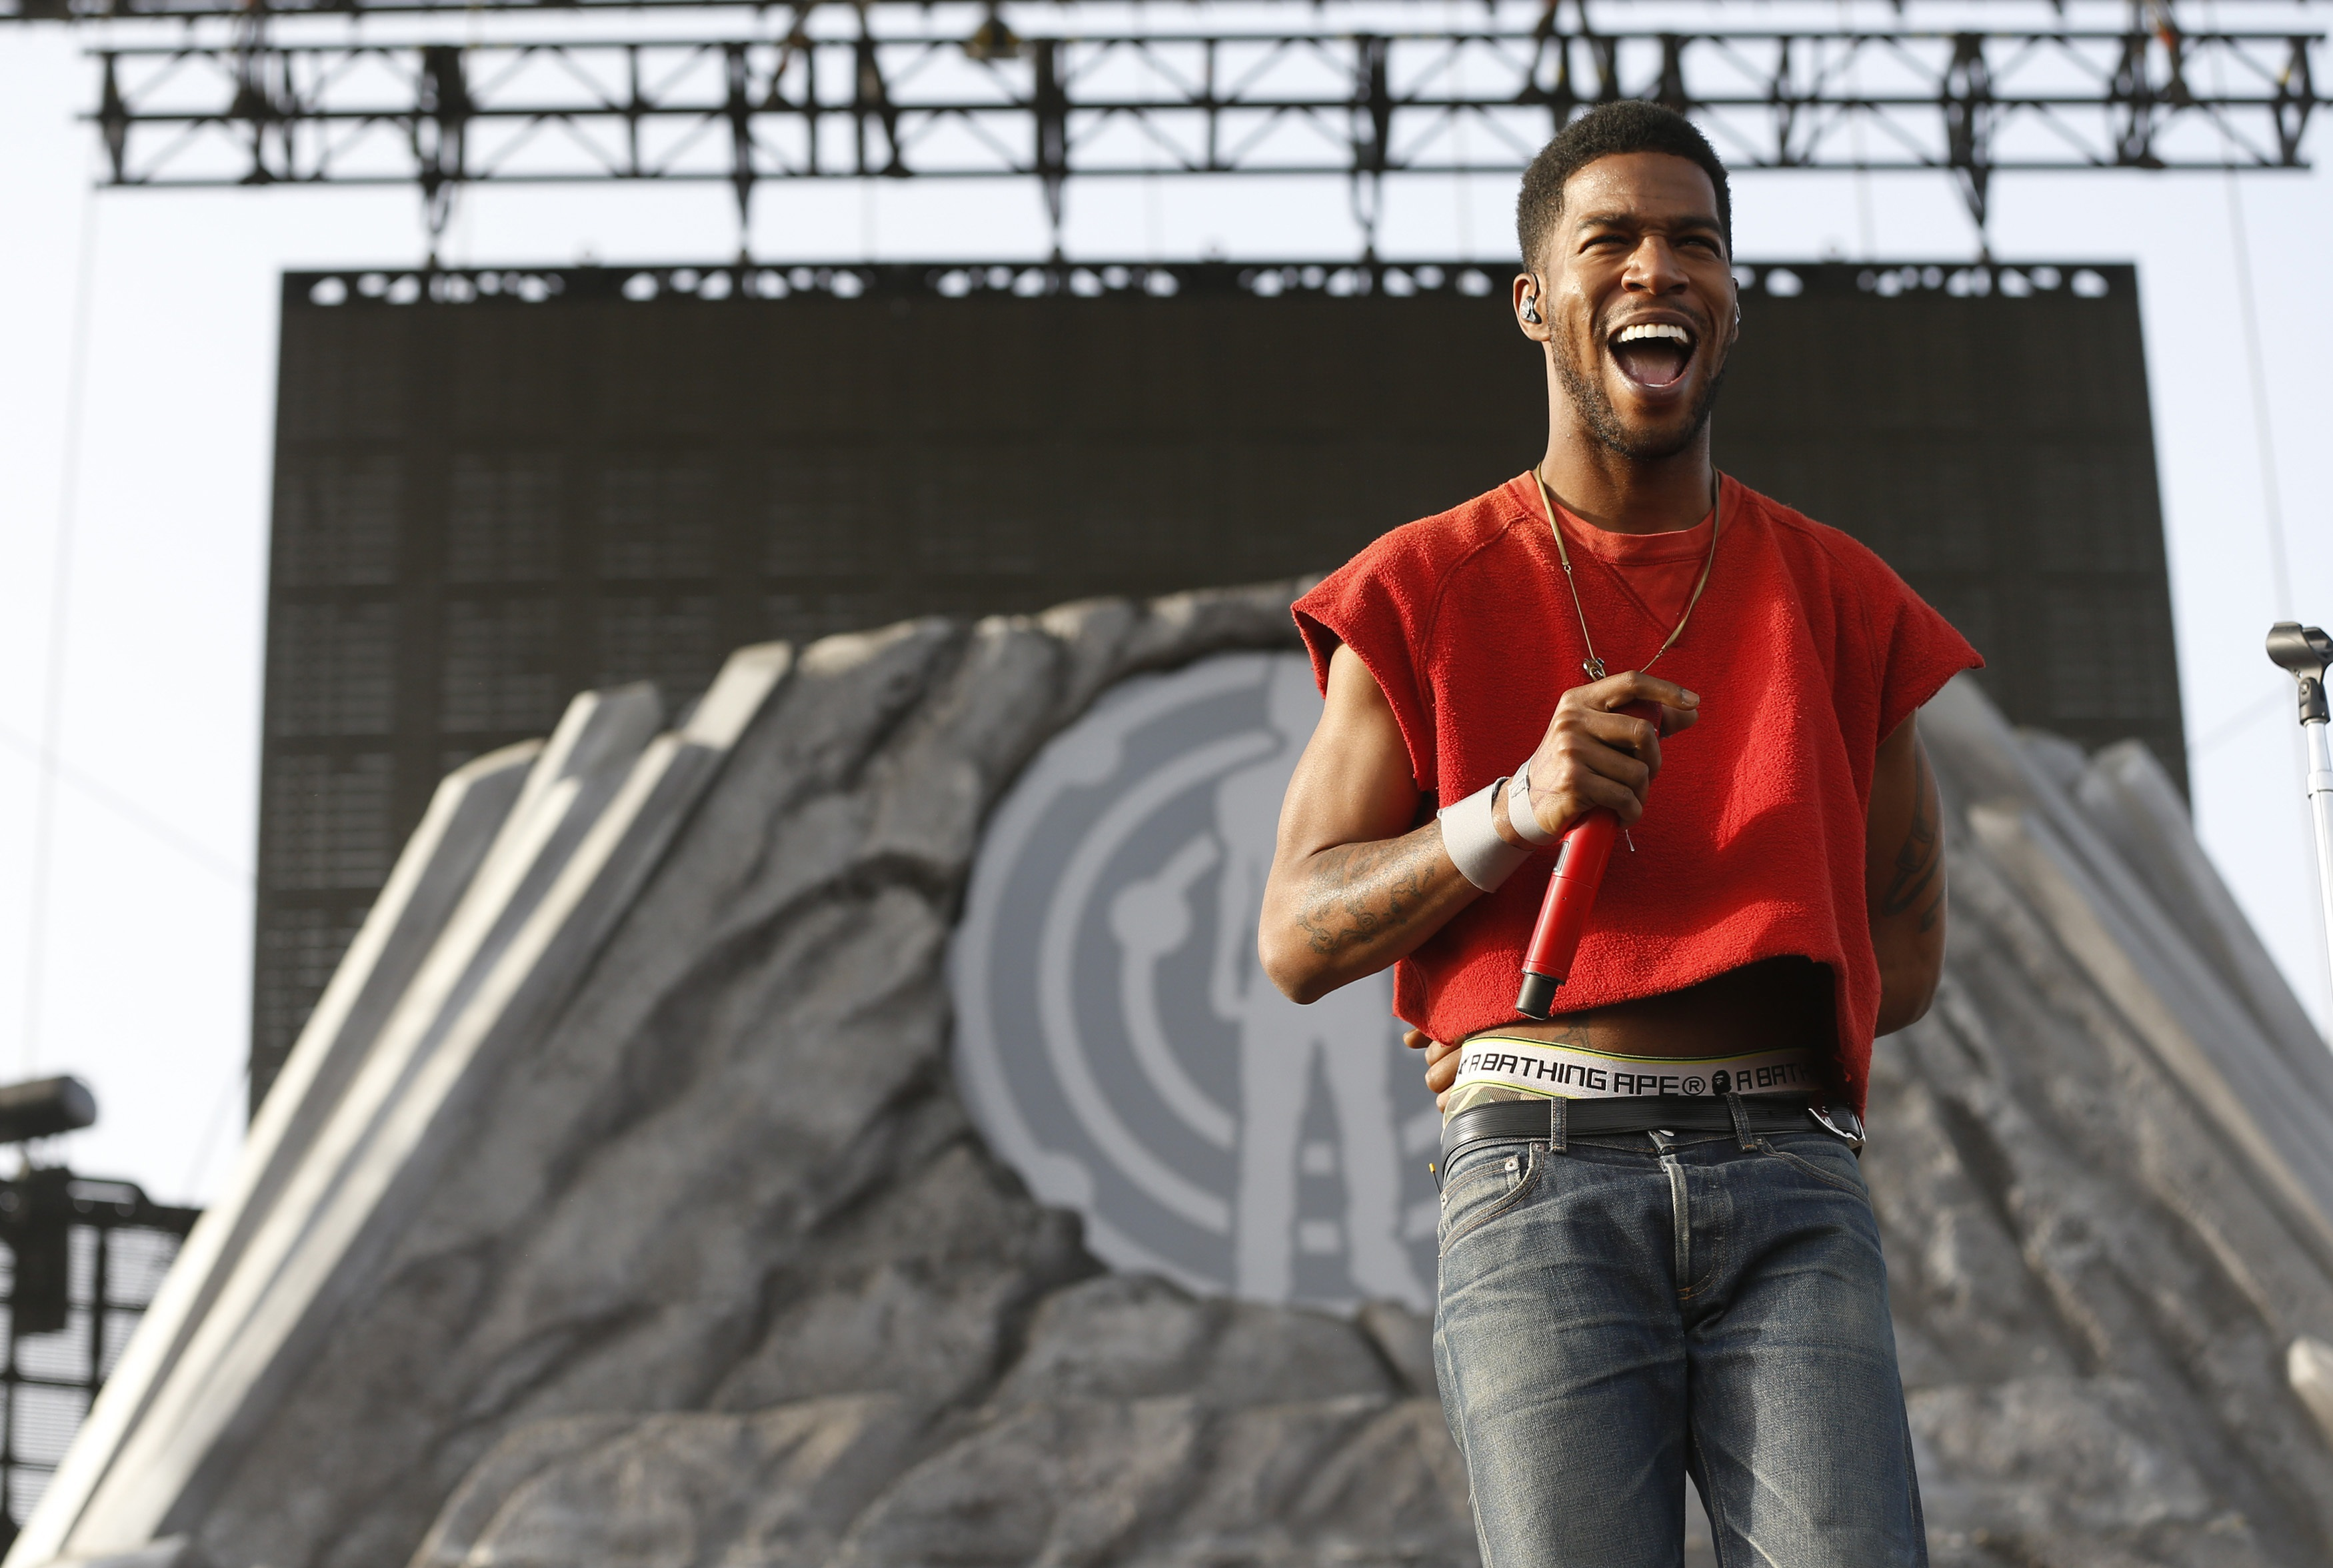 Kid Cudi Hd Wallpaper